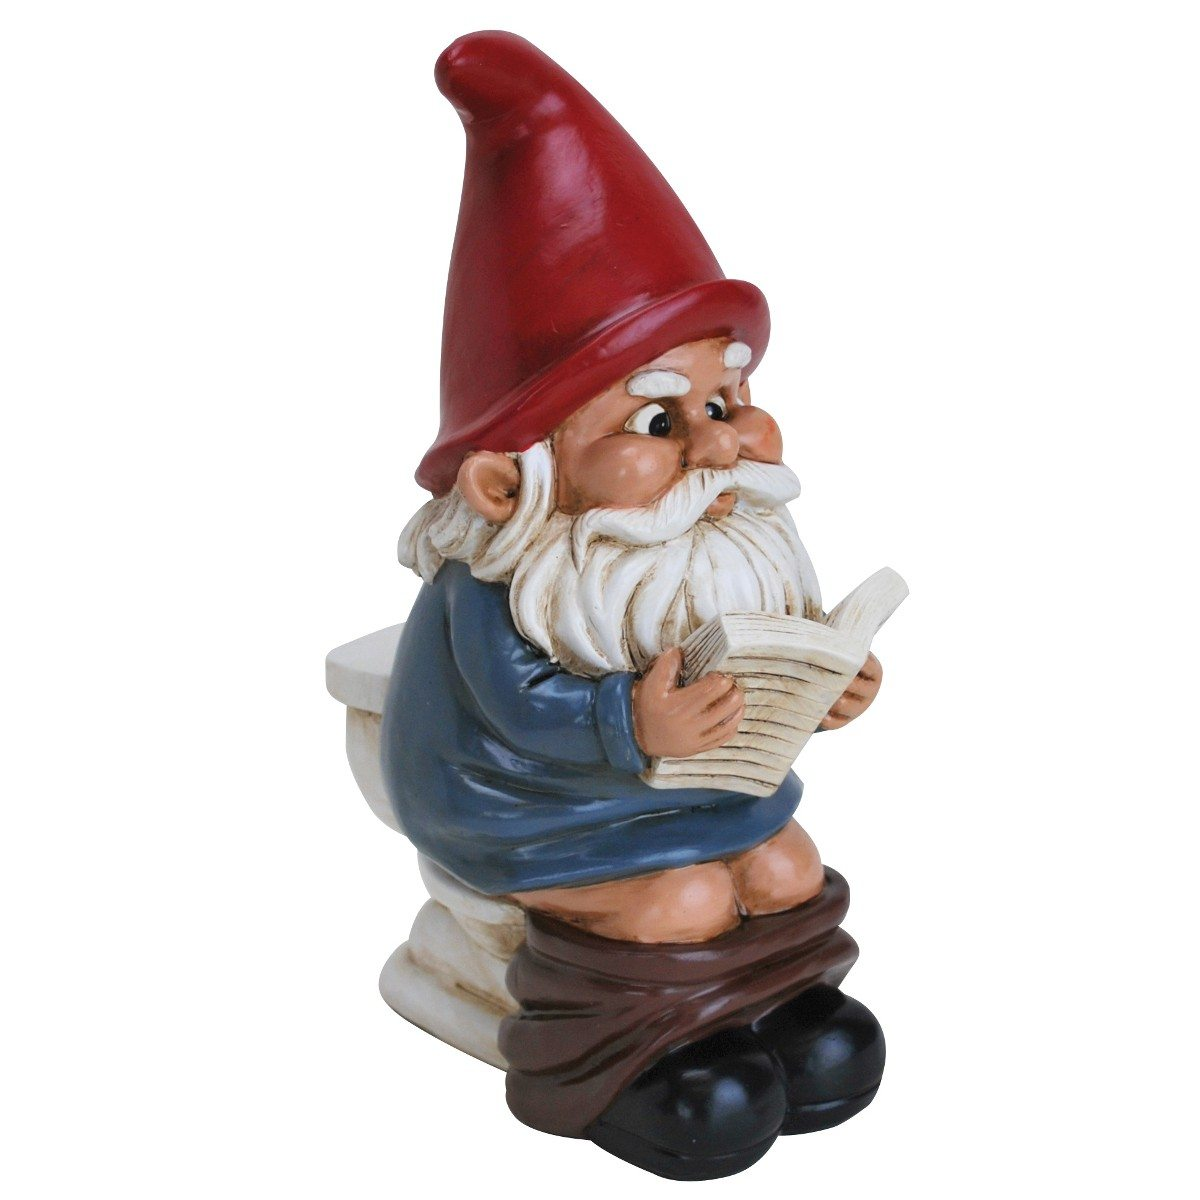 Nain de jardin Game of Thrones - Gnome on Throne